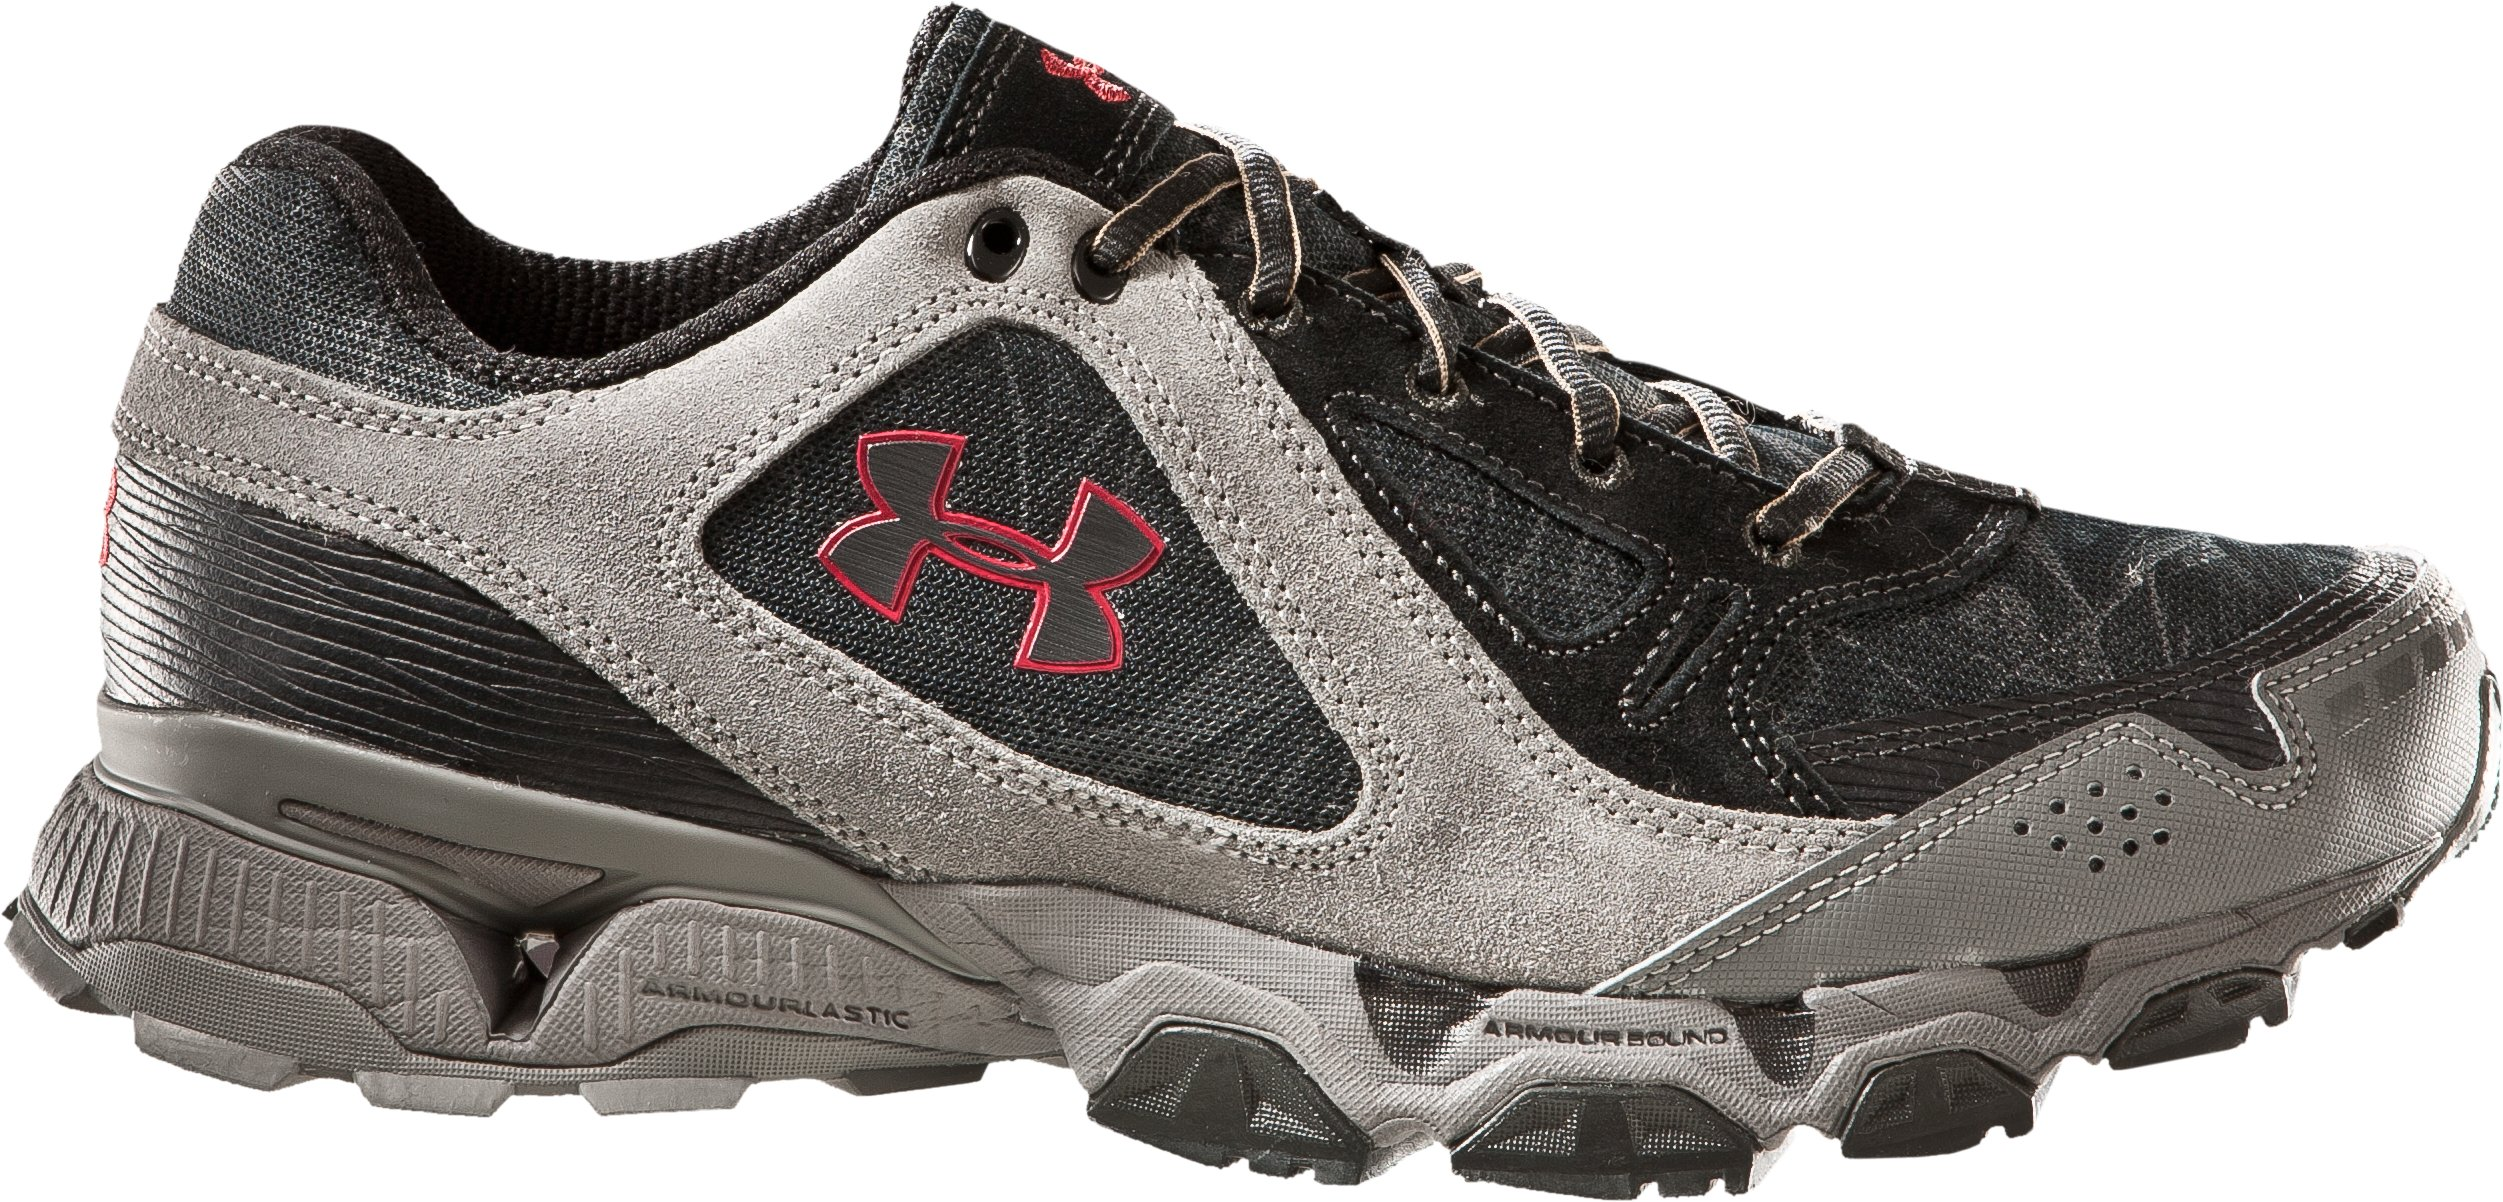 Men's Chetco II Trail Running Shoes, Storm